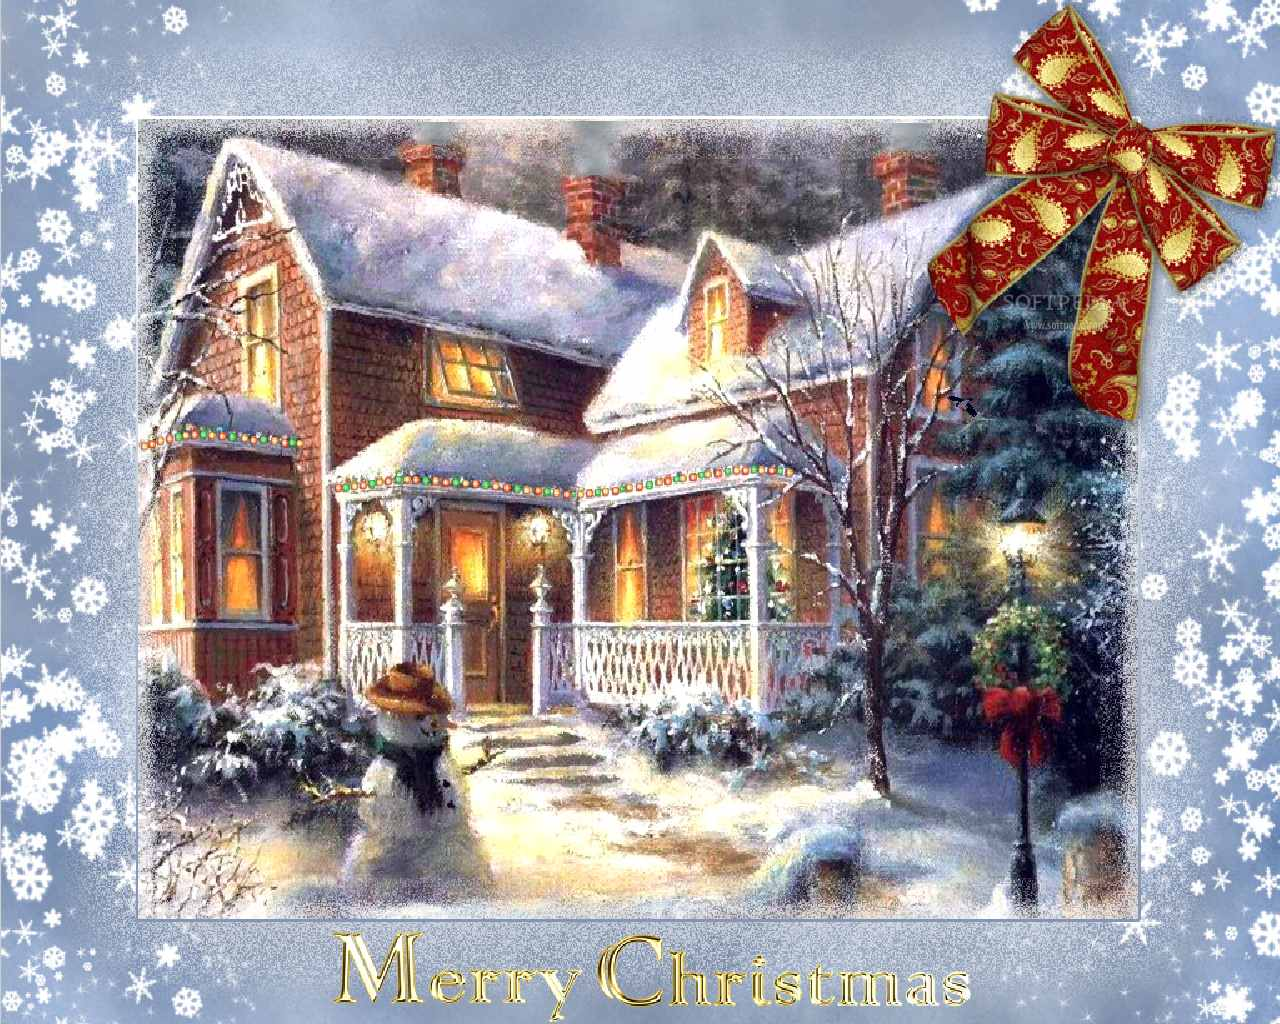 Animated Christmas Screensavers hd | Wallpapers High Definition Wallpapers Desktop Background ...